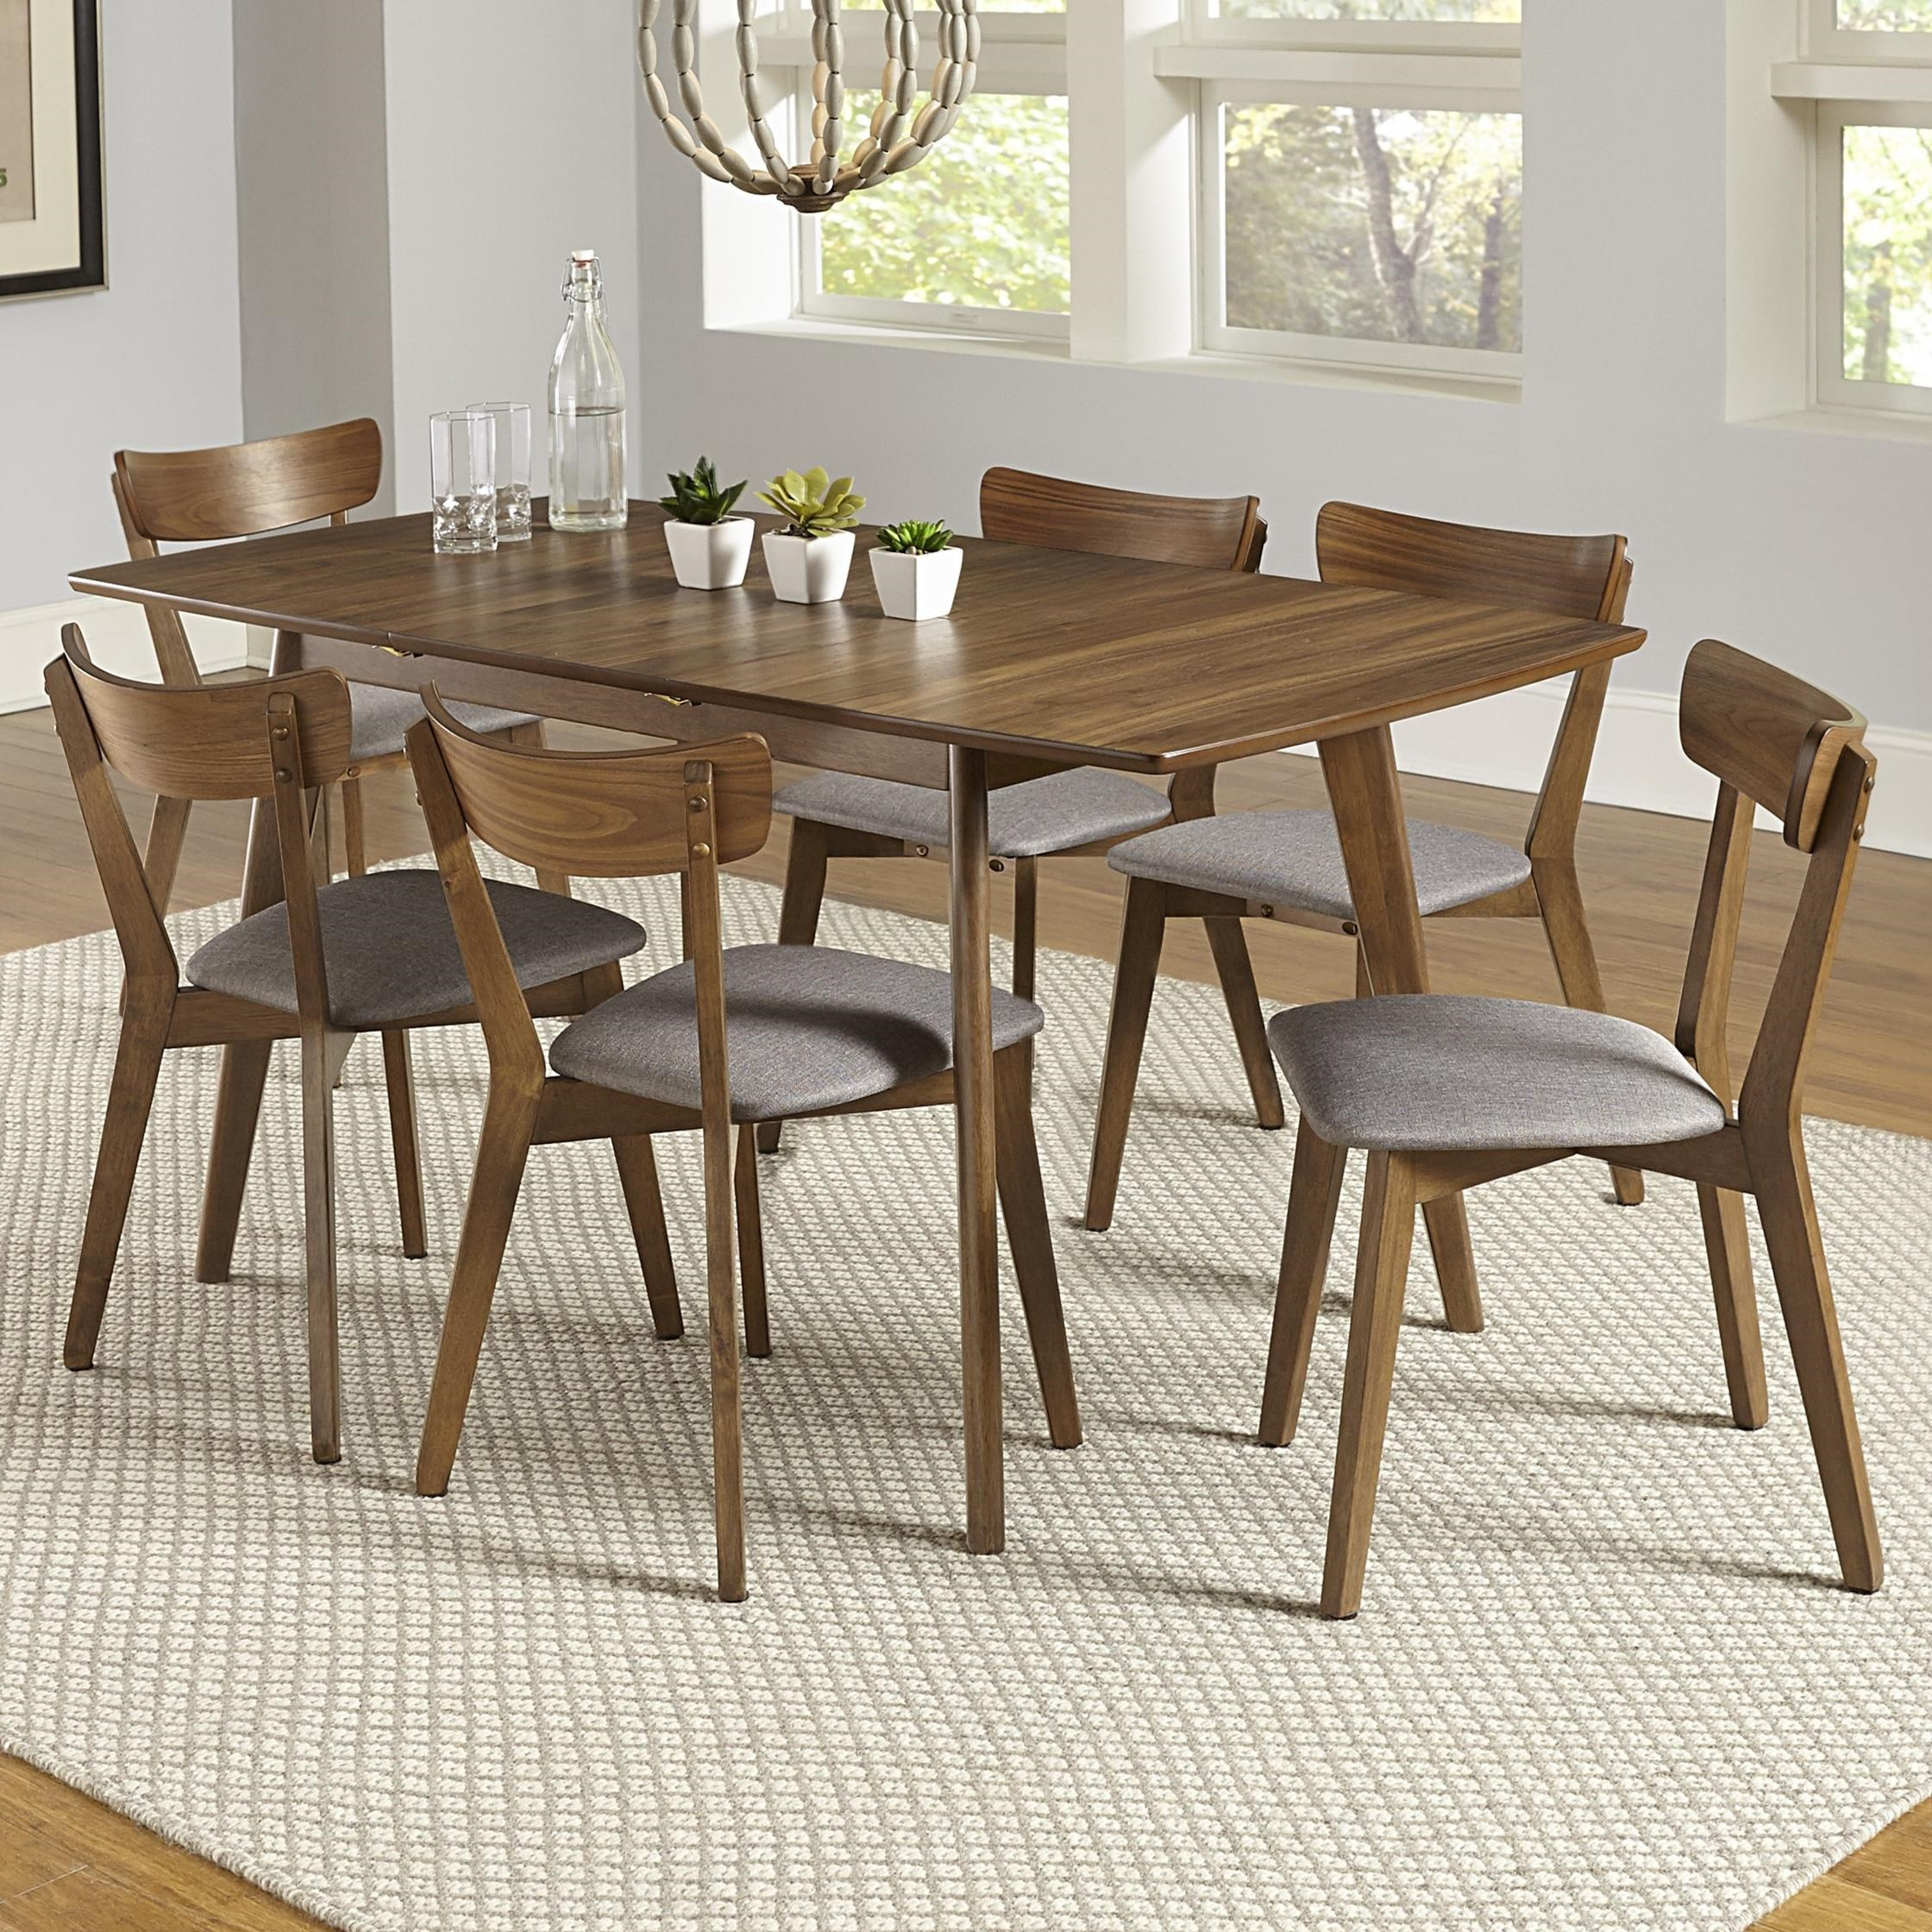 Arcade 7-Piece Butterfly Table Set by Progressive Furniture at Simply Home by Lindy's